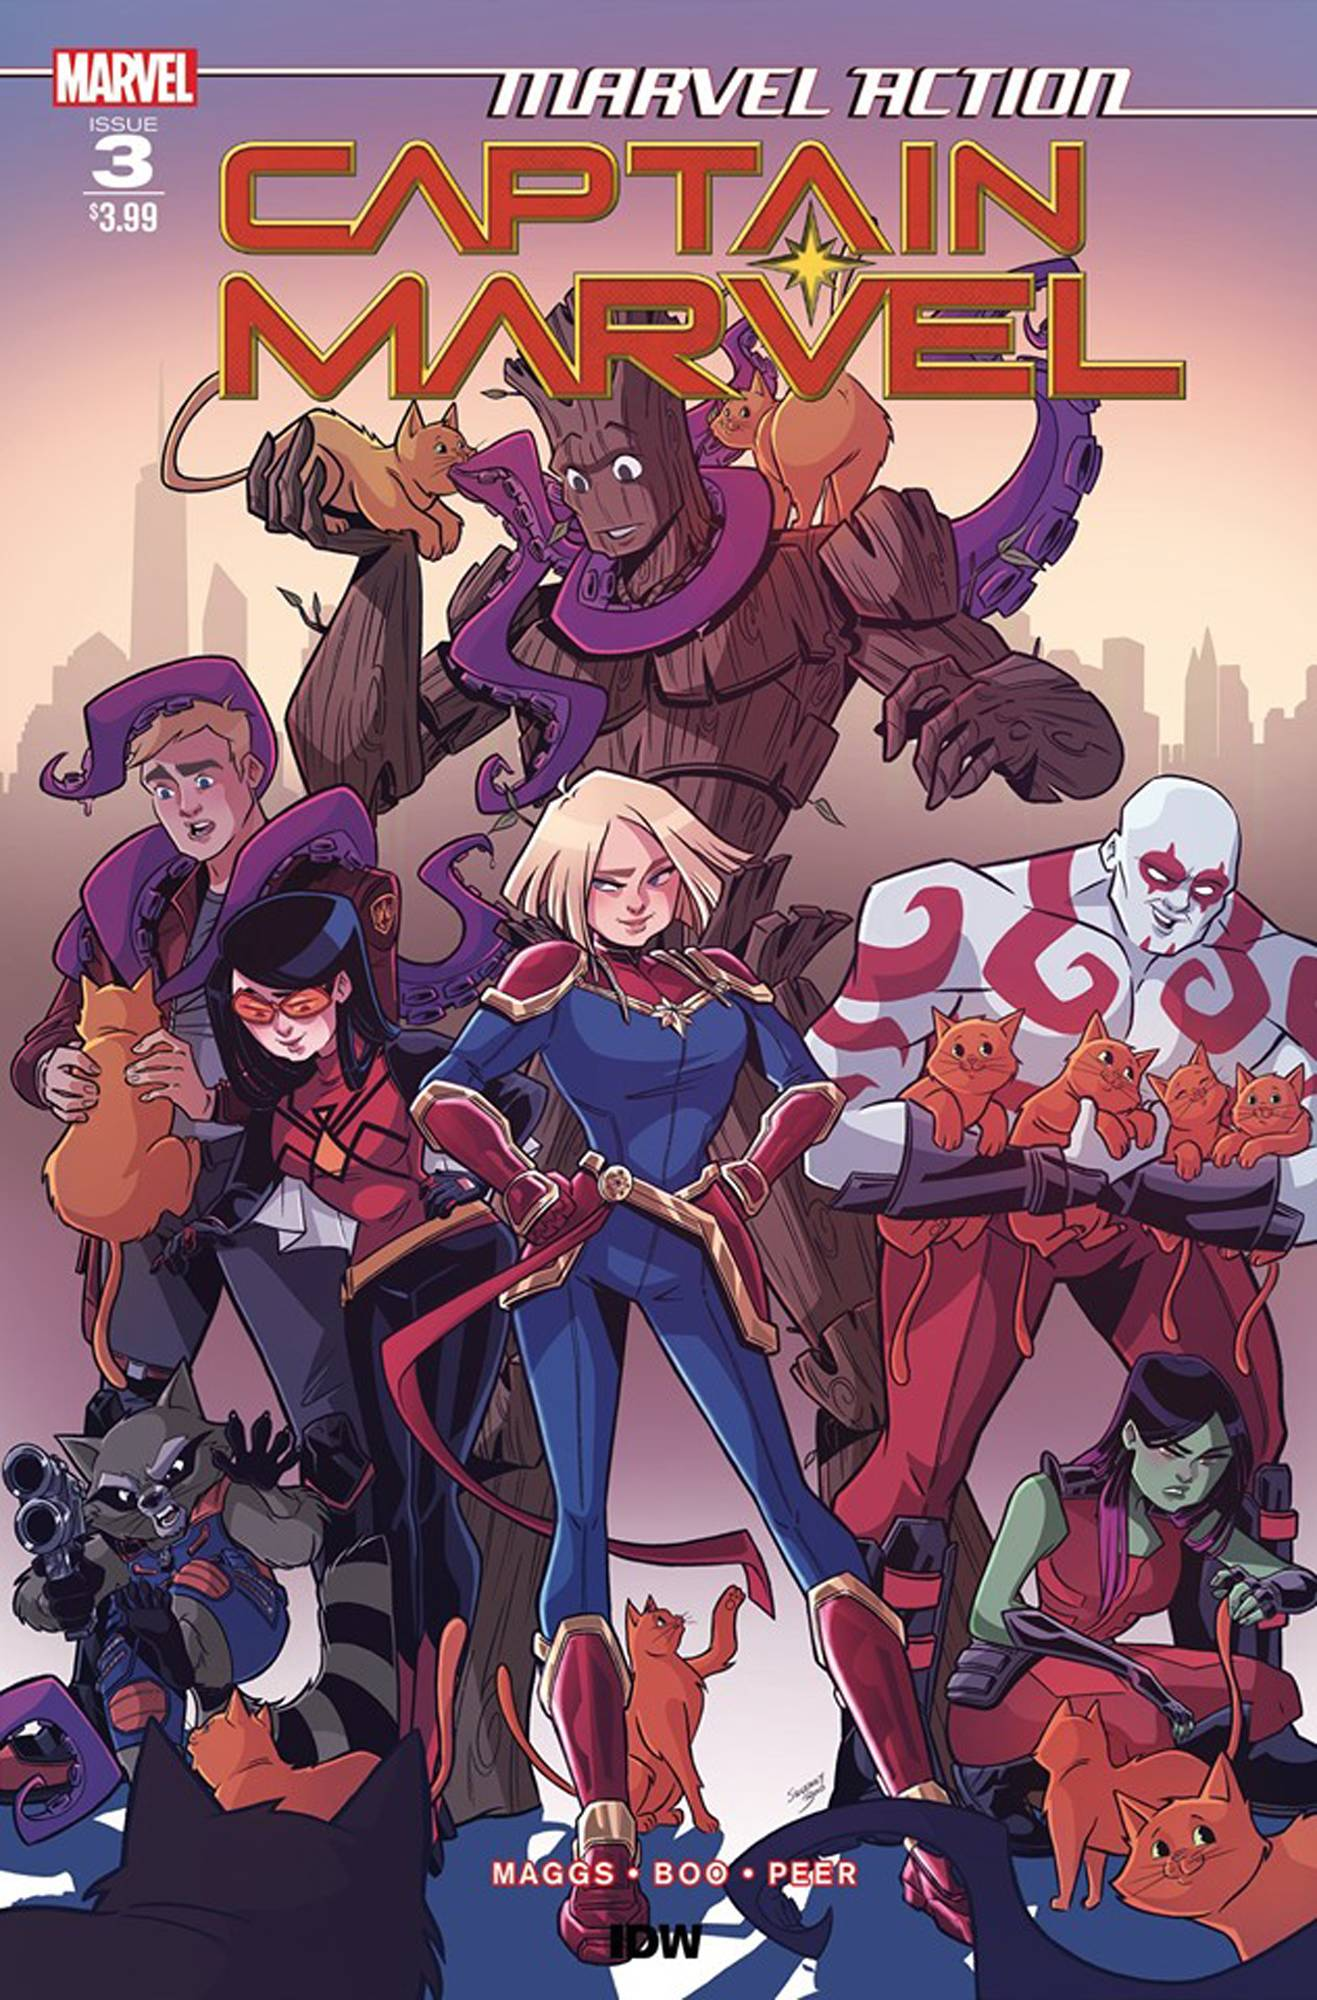 Marvel Action: Captain Marvel #3 (2019)